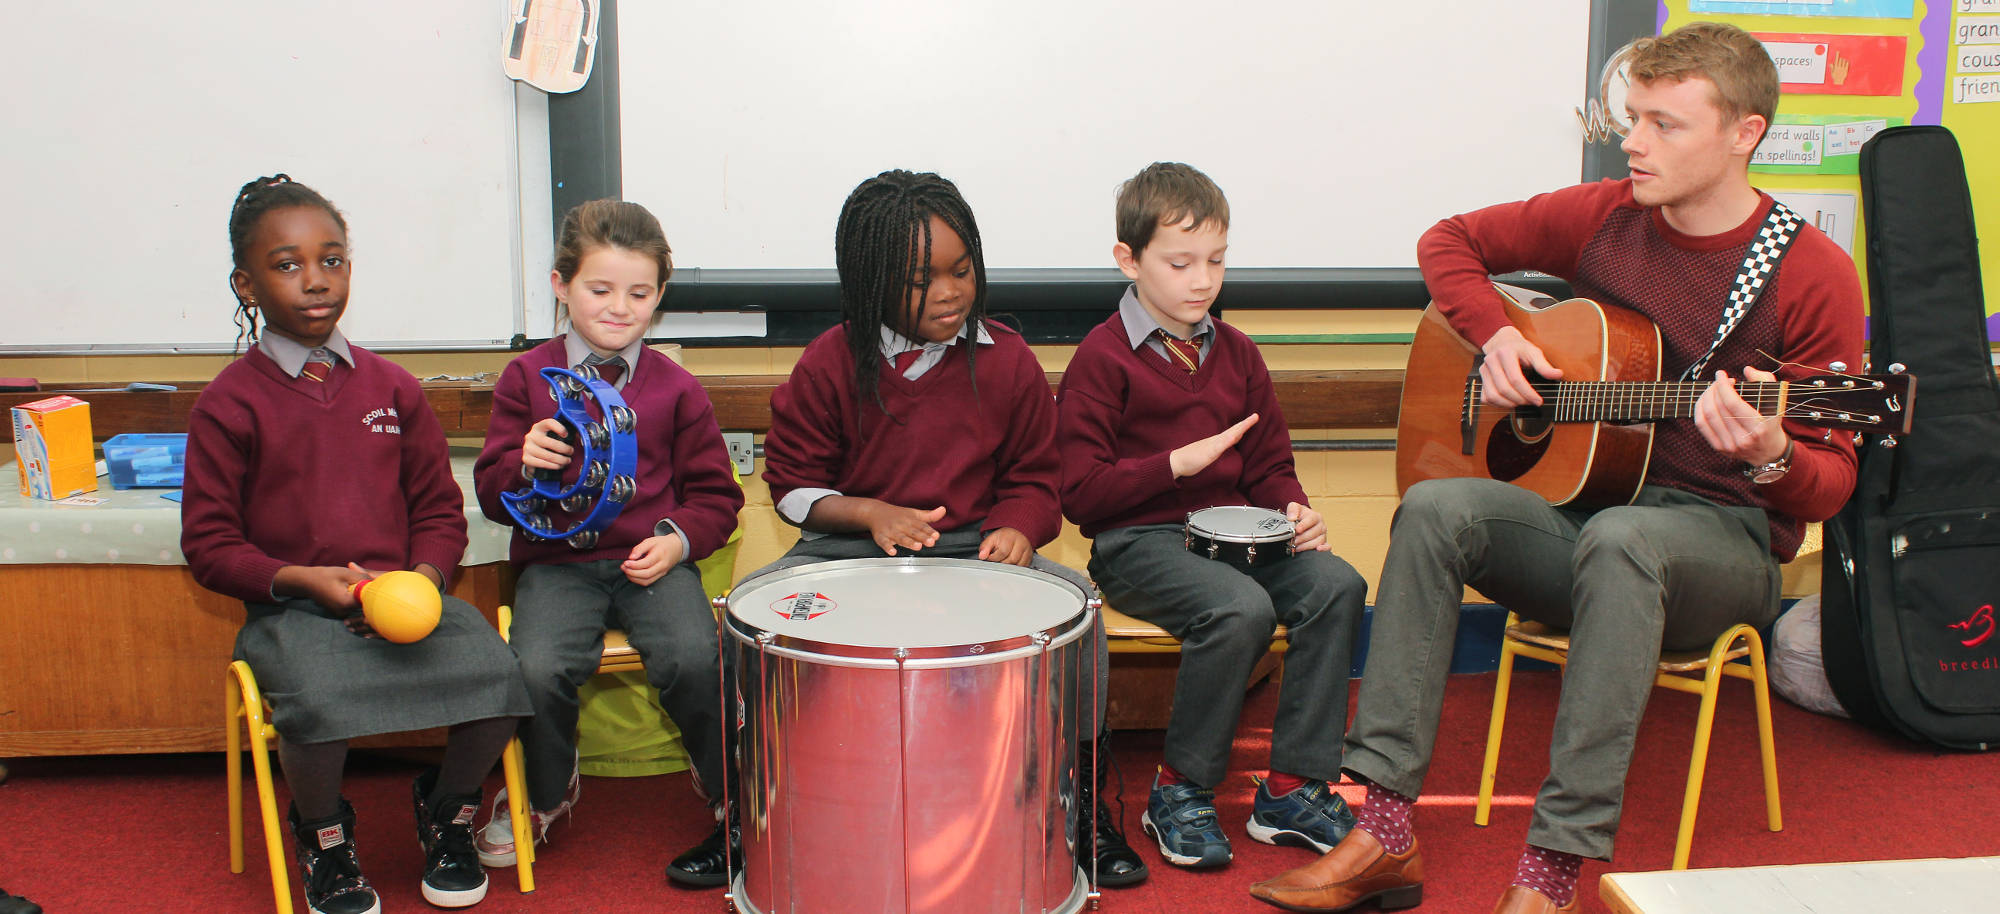 Pupils holding various musical instruments enjoying music class with a teacher playing guitar.